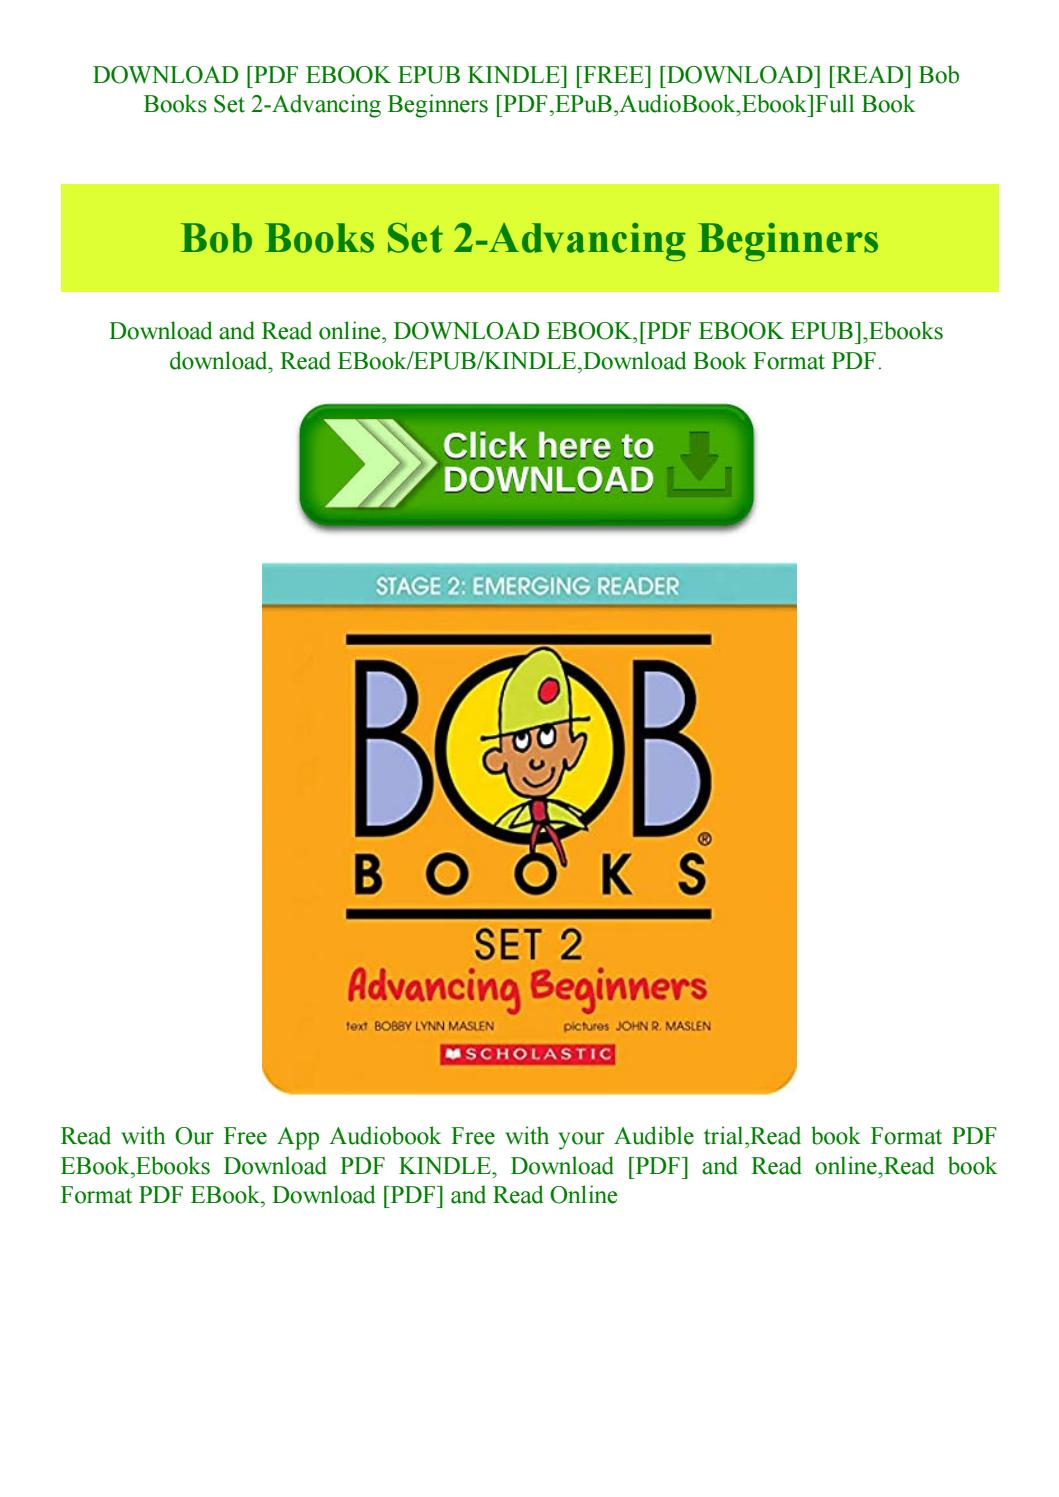 Bob Books Set 2 Pdf Free Download